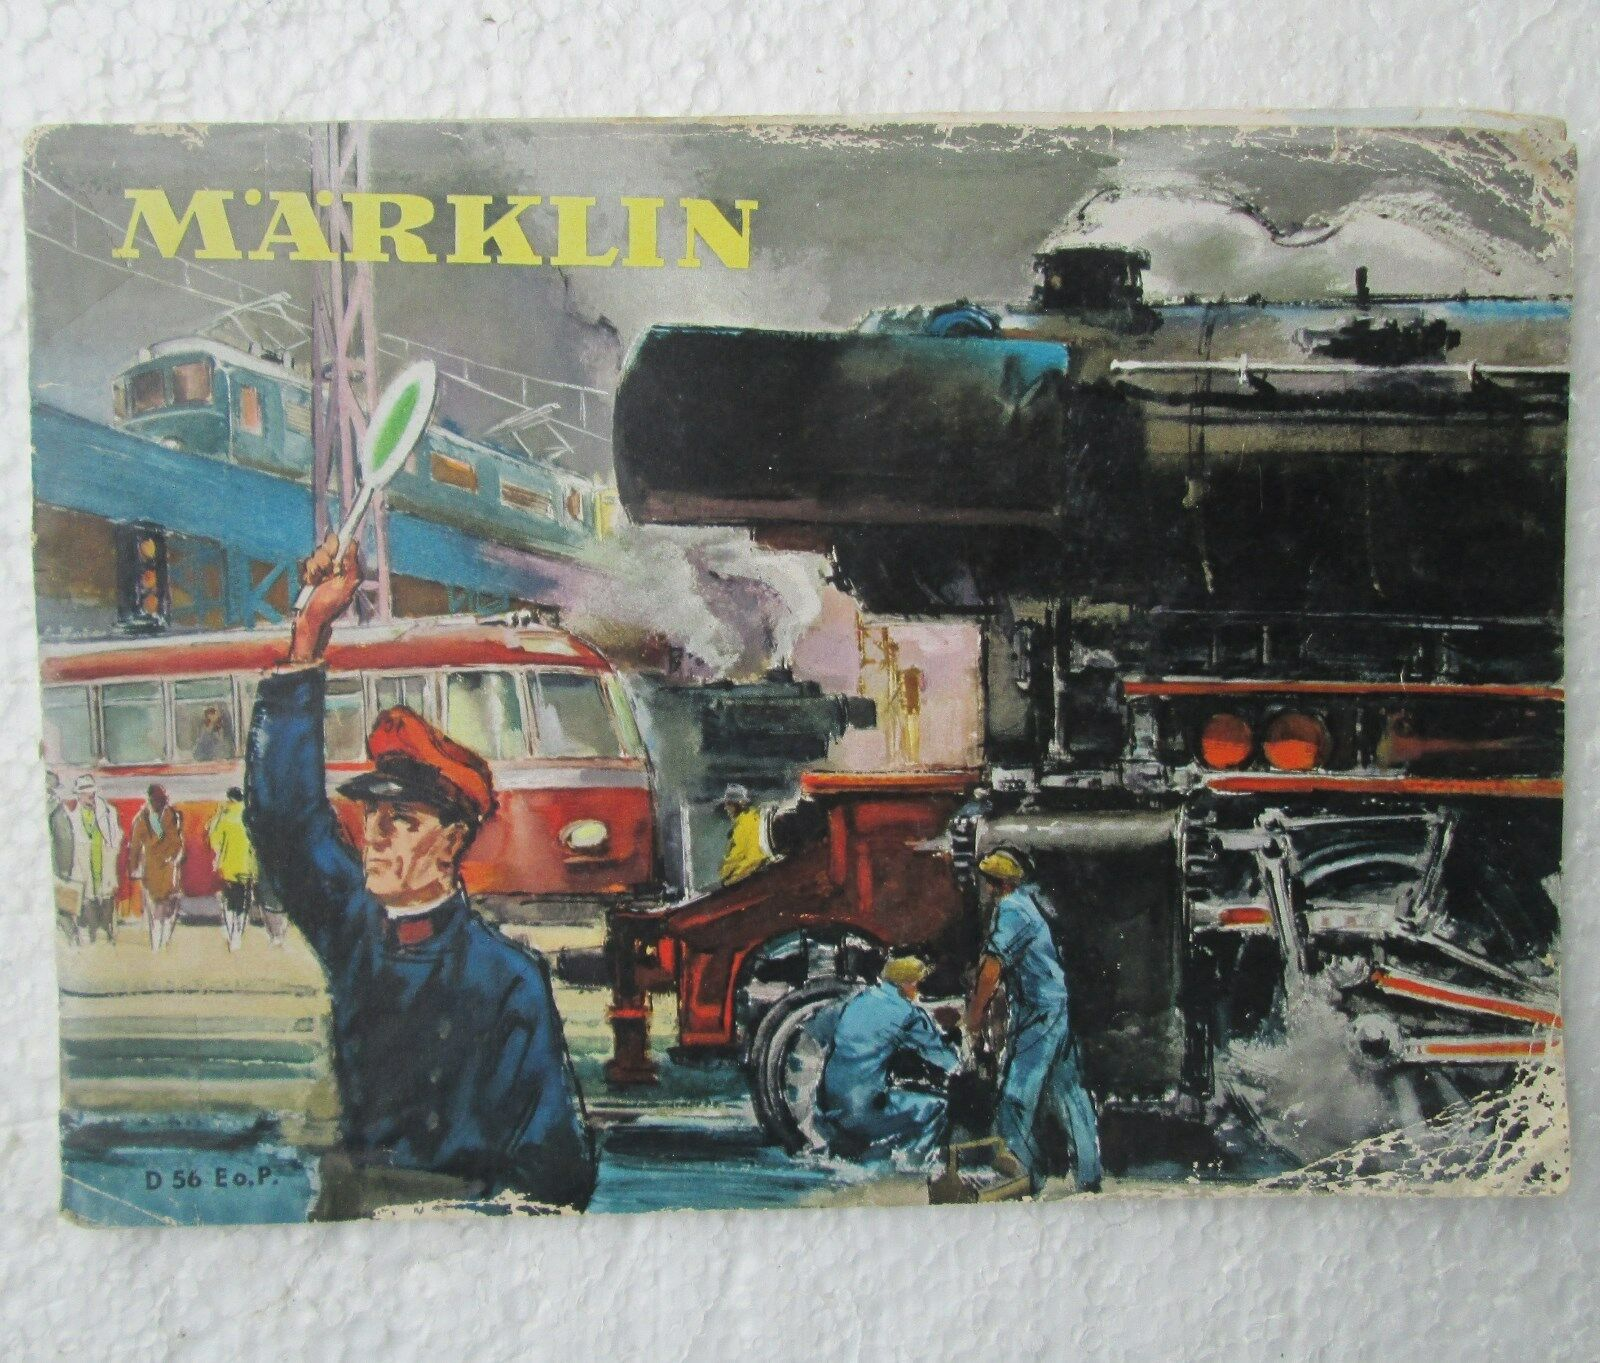 Marklin Catalog 1956 First Year FM 800 includes Erector Sets & Autos